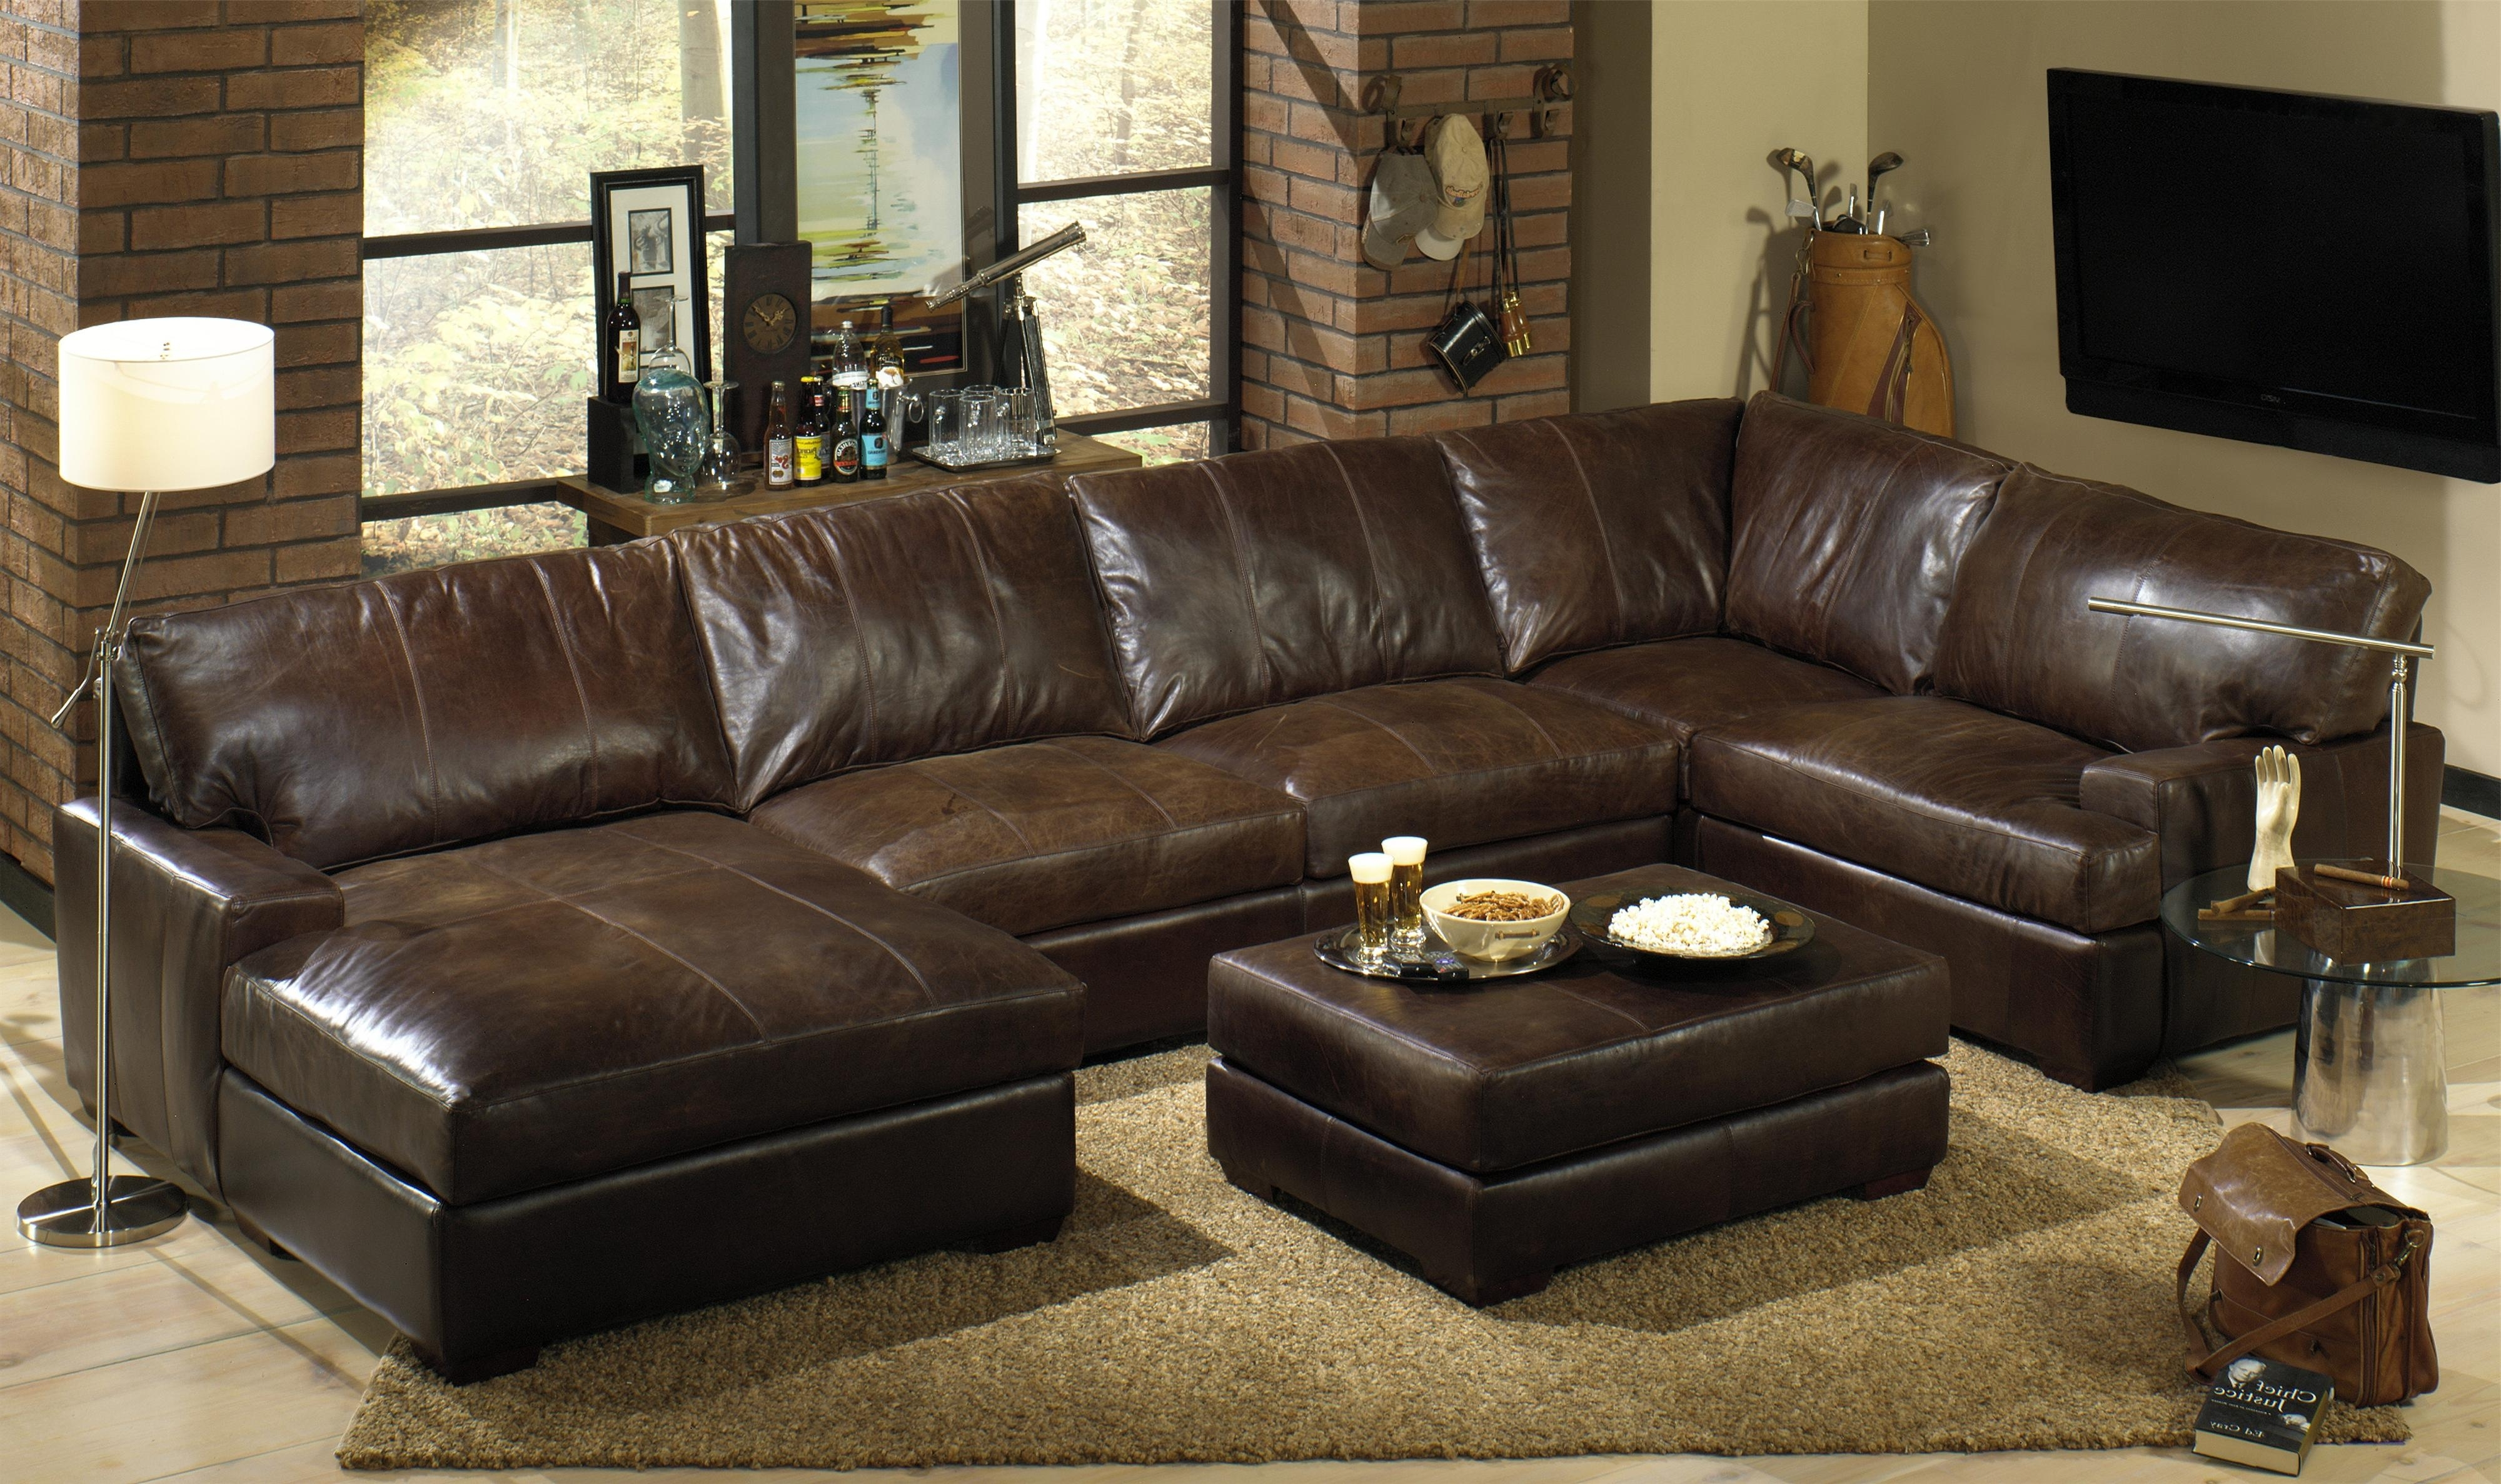 2019 Sectional Sofas With Chaise Lounge And Ottoman Pertaining To Chaise Lounges : Sofas Oversized S Deep Seat Sectional And Leather (View 11 of 20)